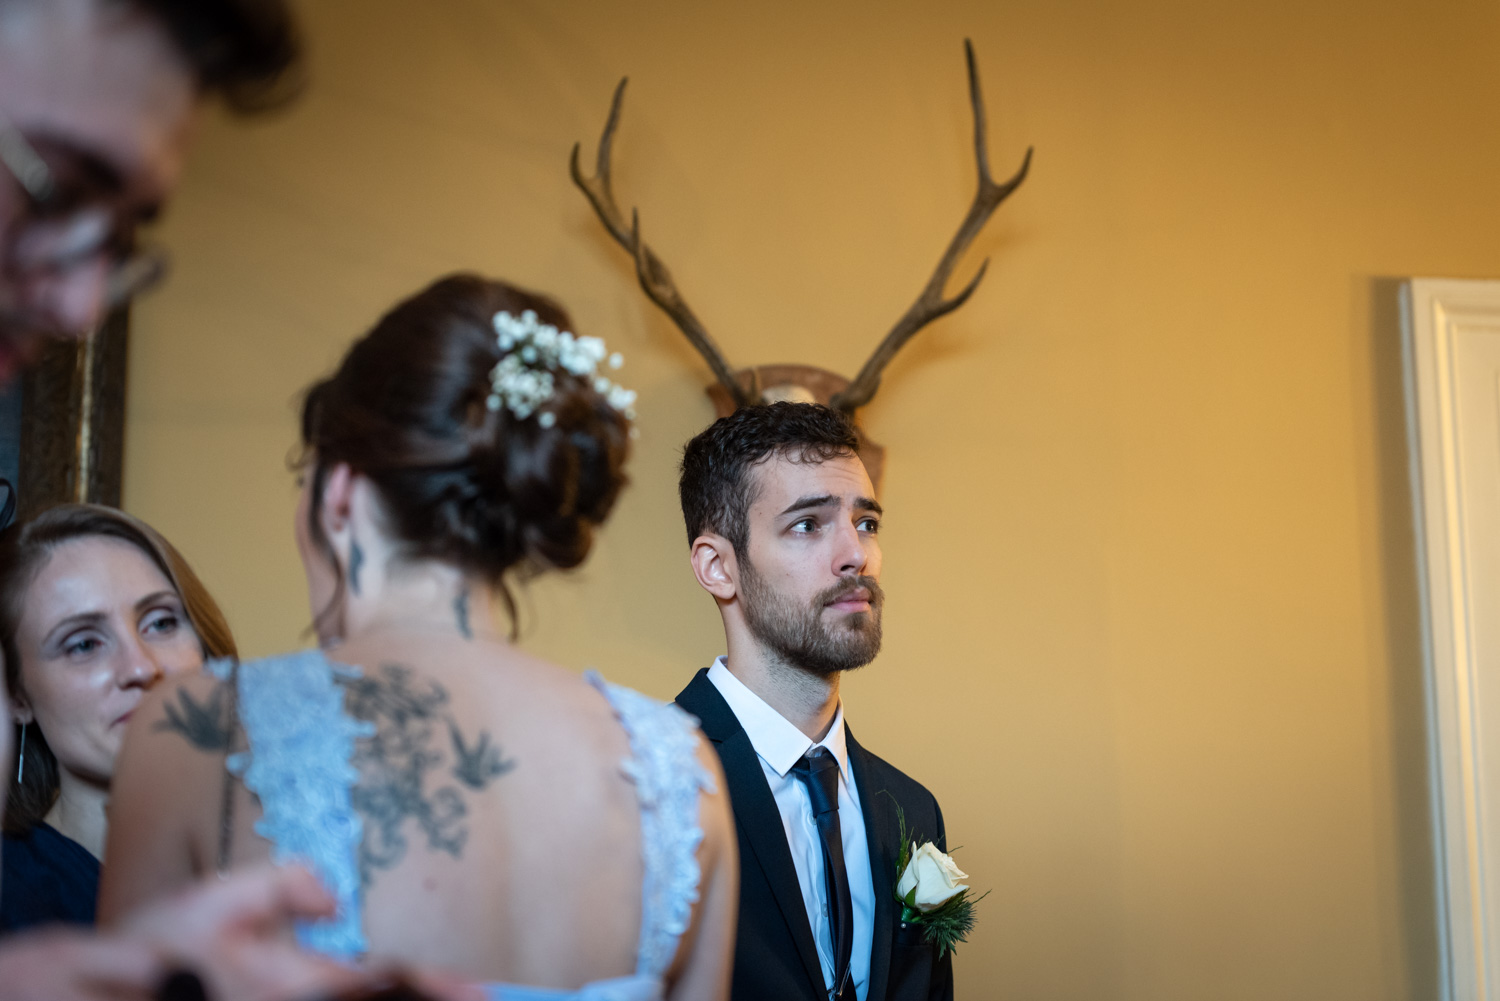 Man stood in front of antlers